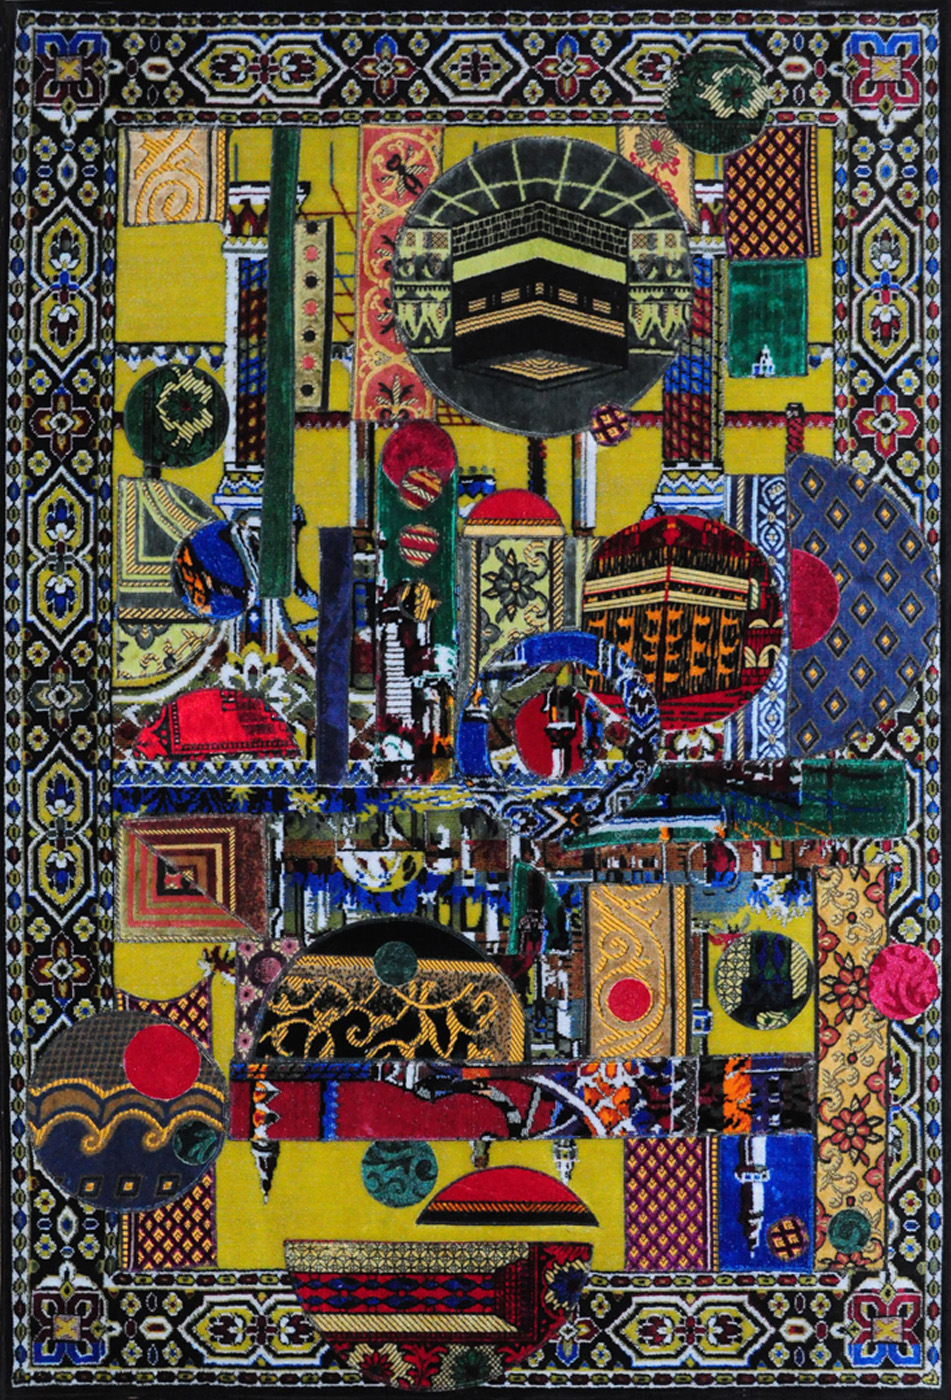 Mounir Fatmi   Father's Carpet #8 , 2010 unique hand-made prayer rug collage 55.25 x 37.5 inches 140.3 x 95.3 cm